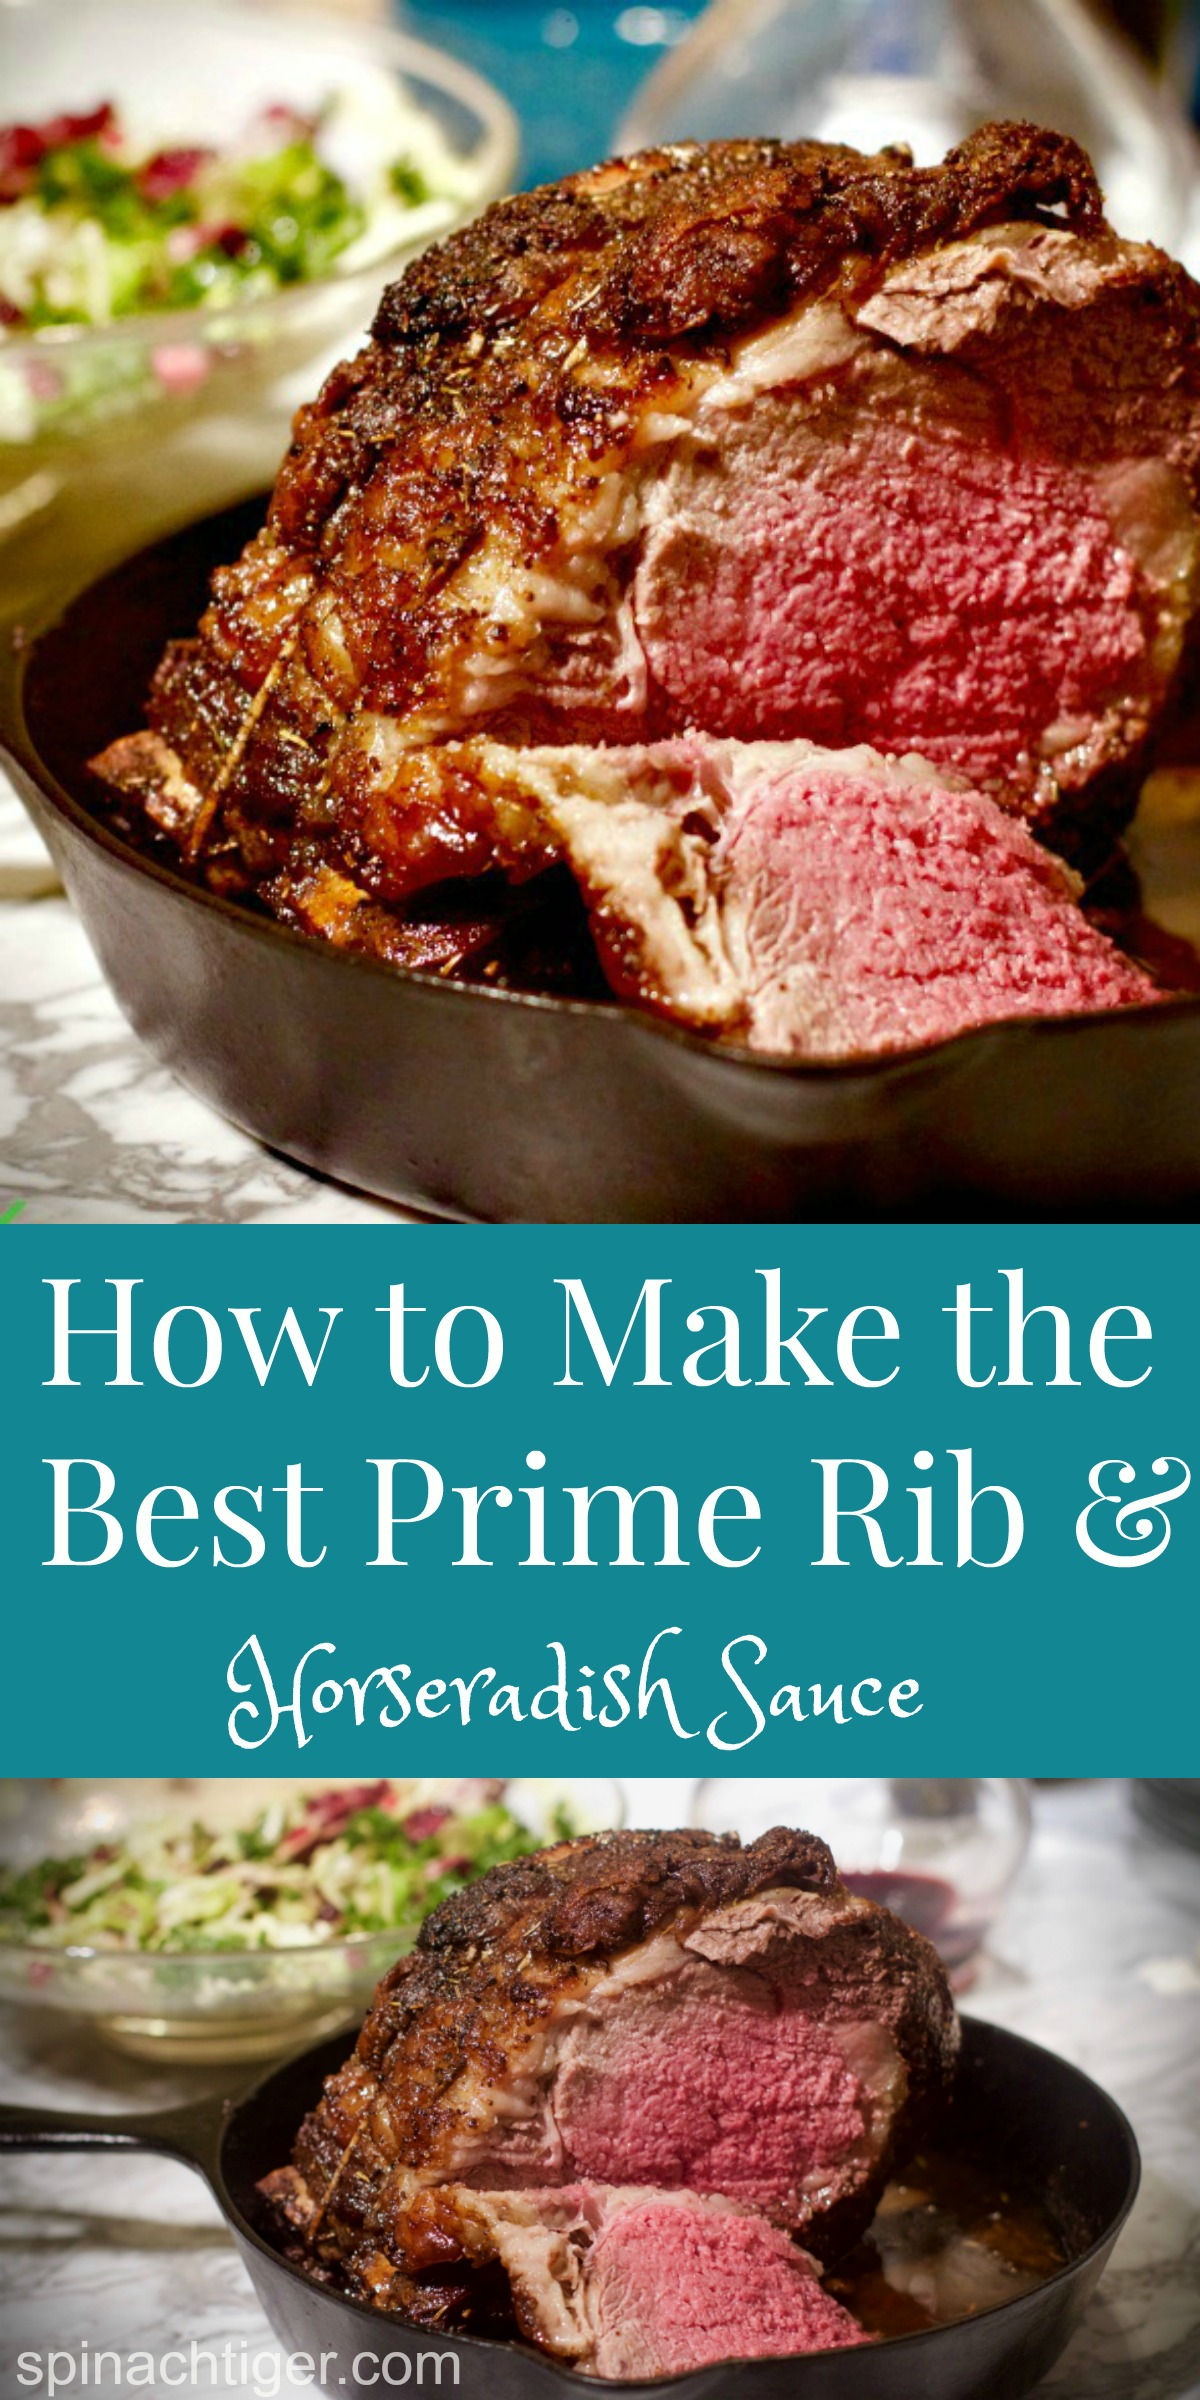 How to Make the Best Prime Rib of Beef from Spinach Tiger